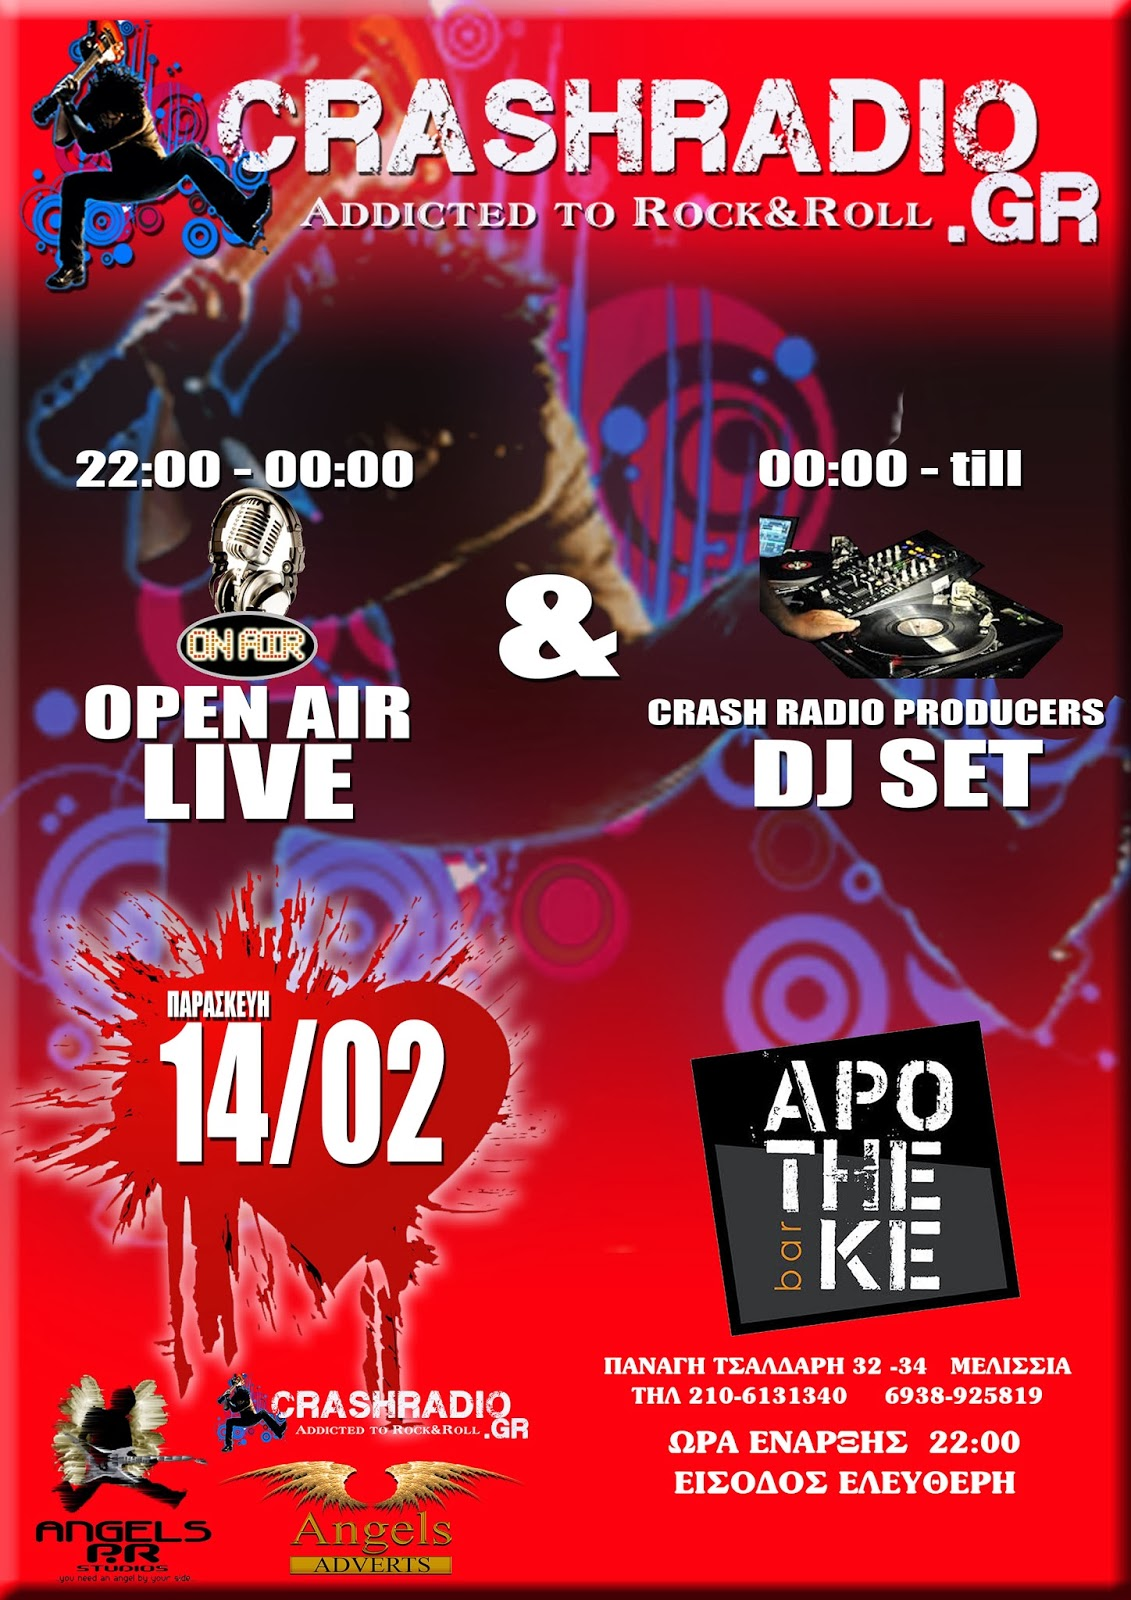 o-crash-radio-apotheke-bar-14-fevrouariou